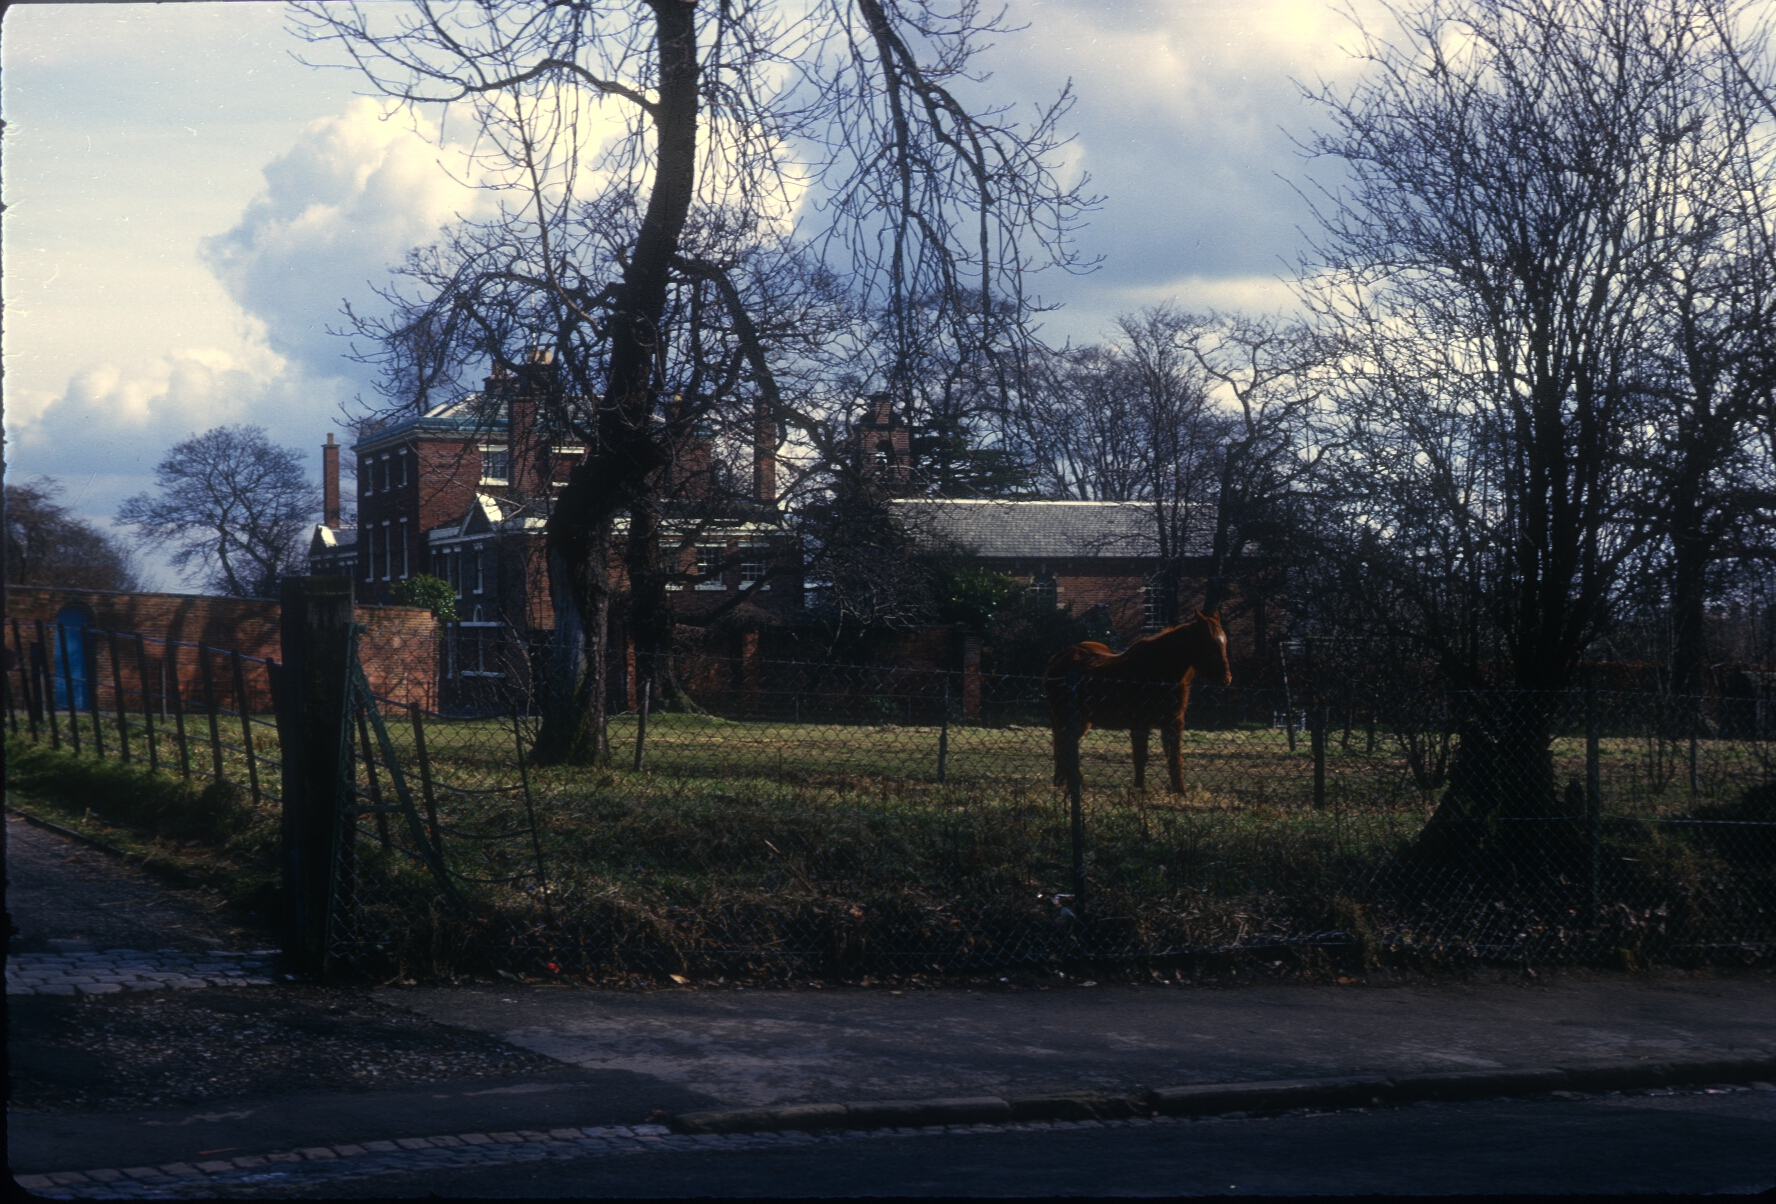 Harborne Bishop of Birmingham's House, Bishop's Croft, Old Church Road (Late 18th Century) 26th February 1967